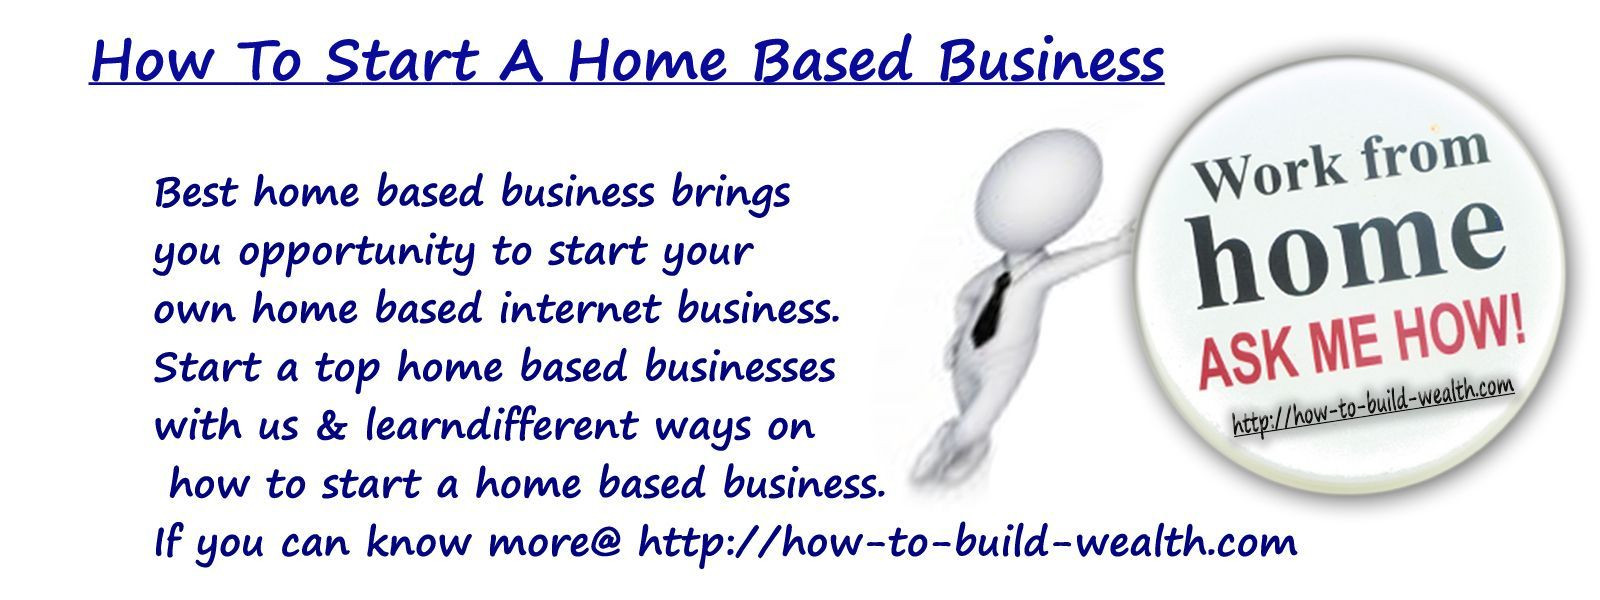 How to start a home based business Best home based business brings ...